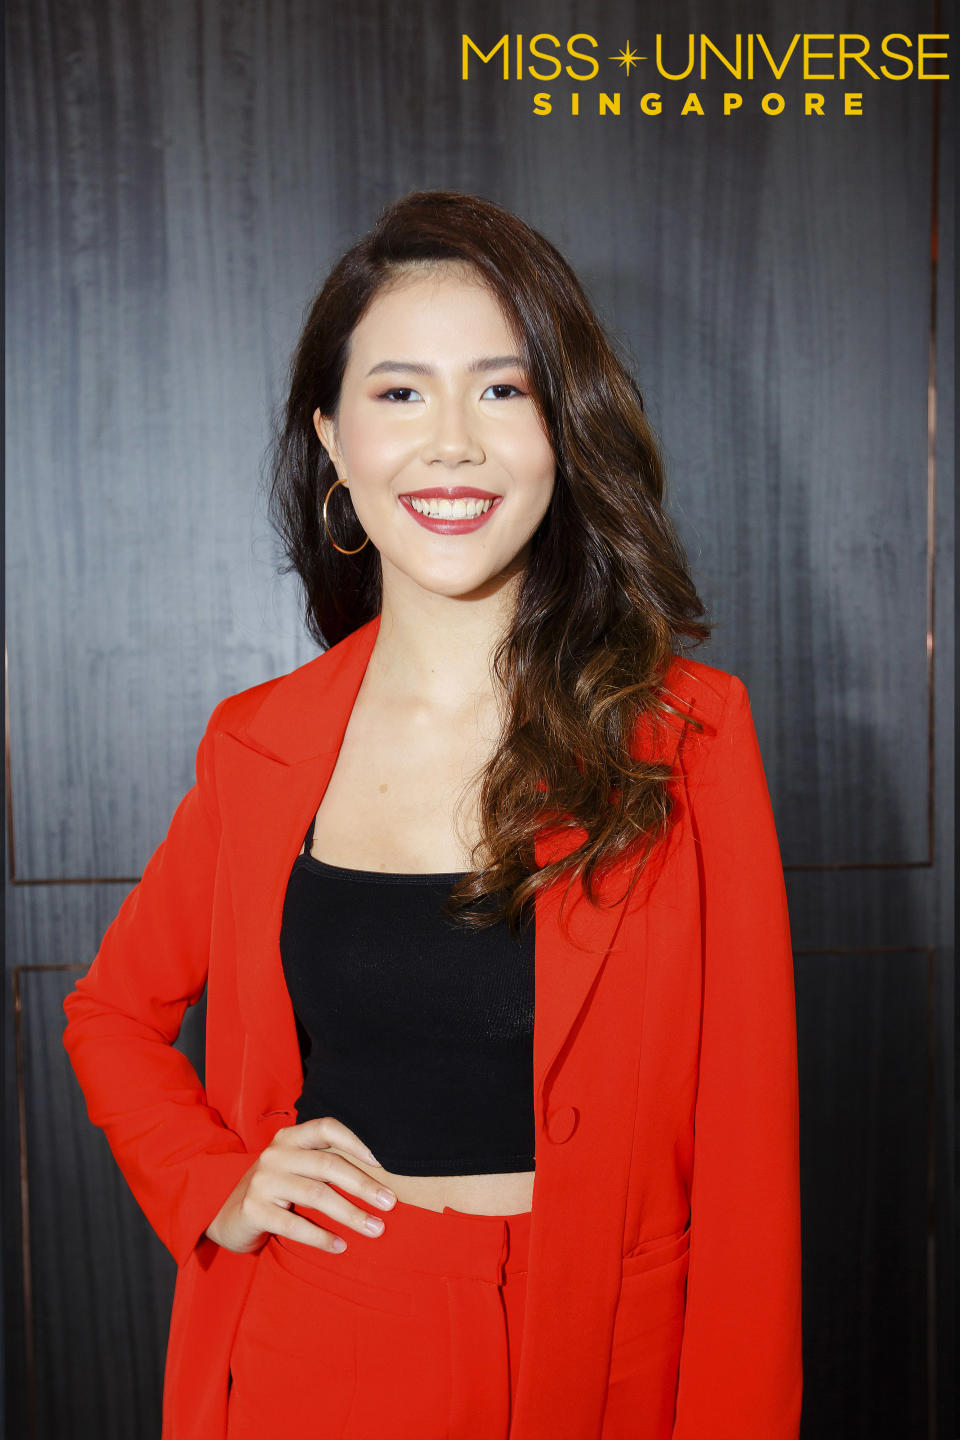 """Annika Xue Sager is currently working as a spin instructor and model. She surprised her brother this year with a treat. """"He has always been my pillar of strength and voice of reason, and I wanted to thank him for all the times he's helped me out. I saved up and bought him a flight home for Christmas."""" Bless her heart."""